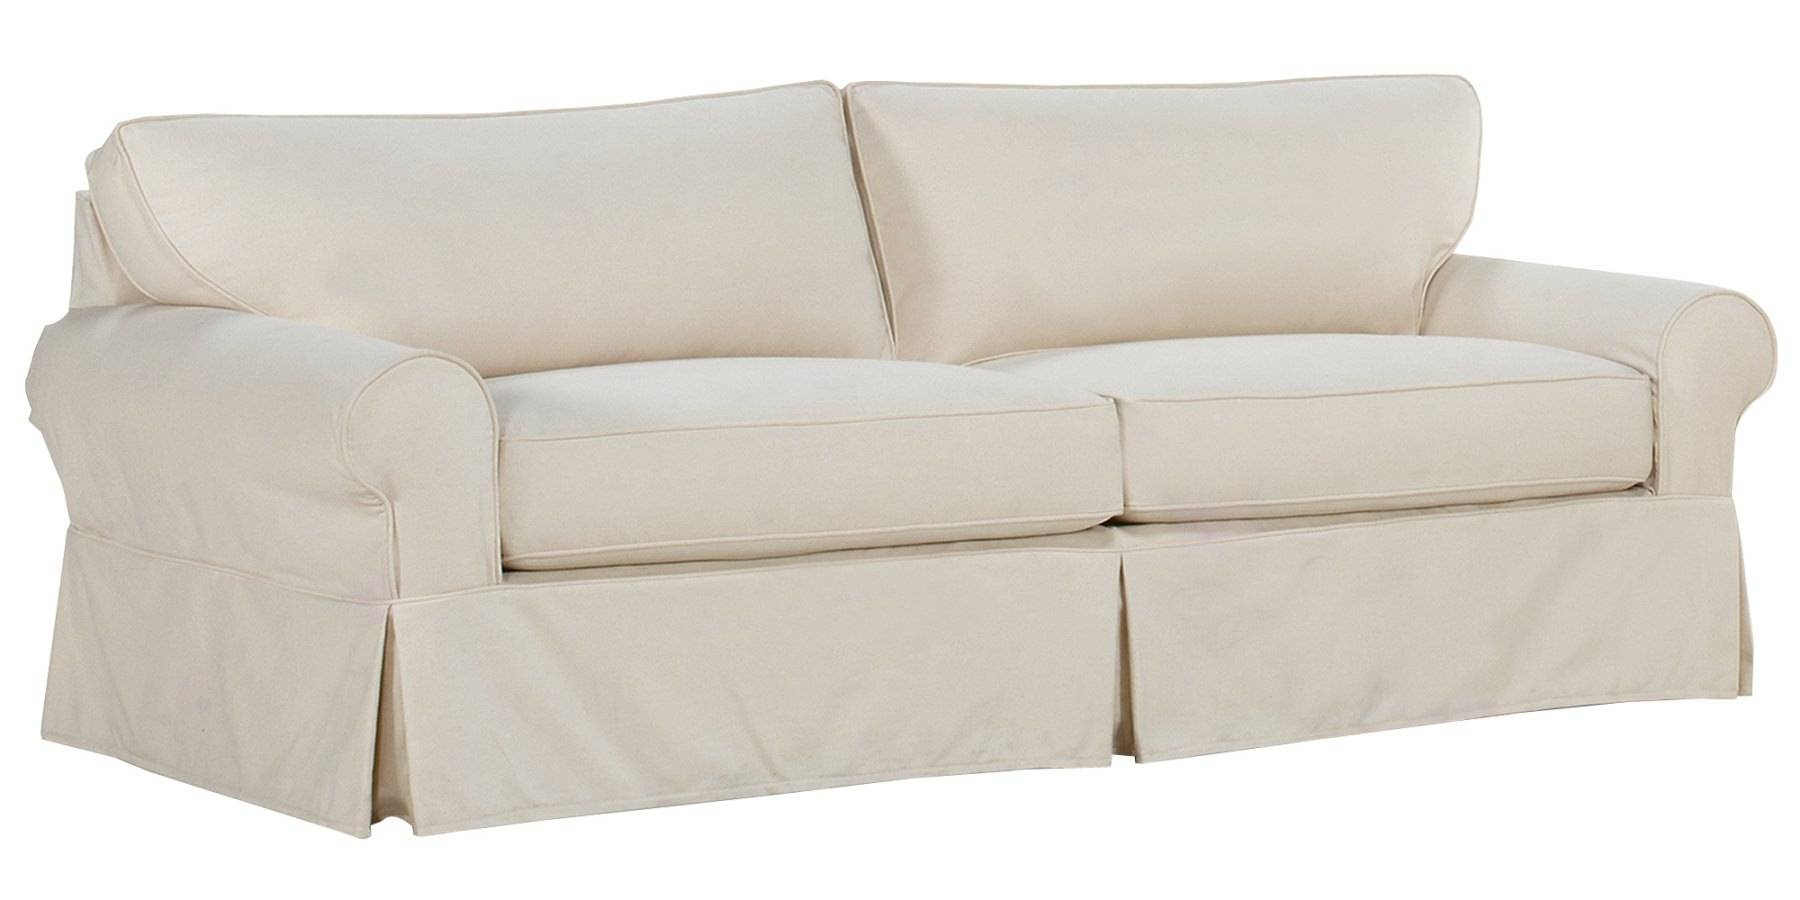 Fresh Slipcover Sofas 67 For Contemporary Sofa Inspiration With in Contemporary Sofa Slipcovers (Image 11 of 30)